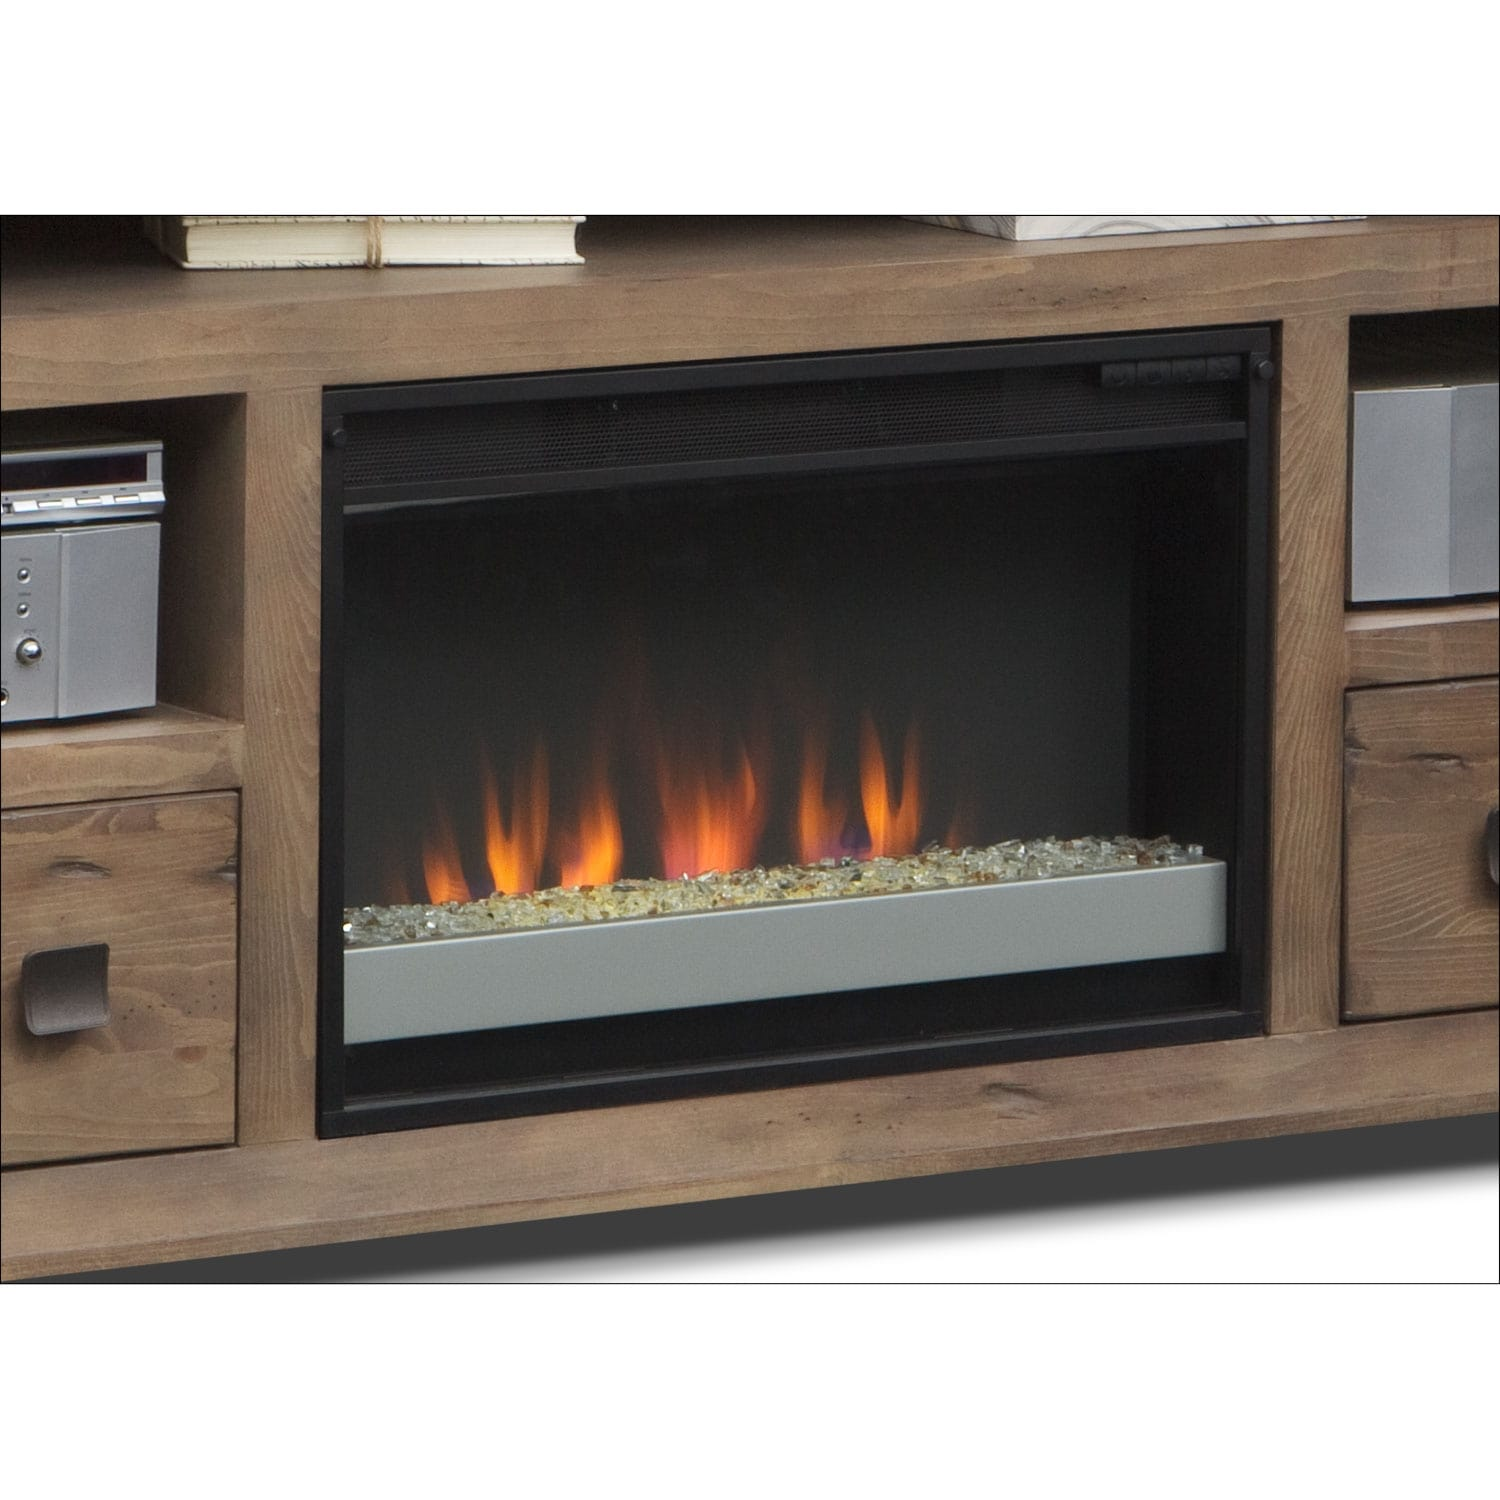 Mesa 74 Fireplace Tv Stand With Contemporary Insert Distressed Pine Value City Furniture